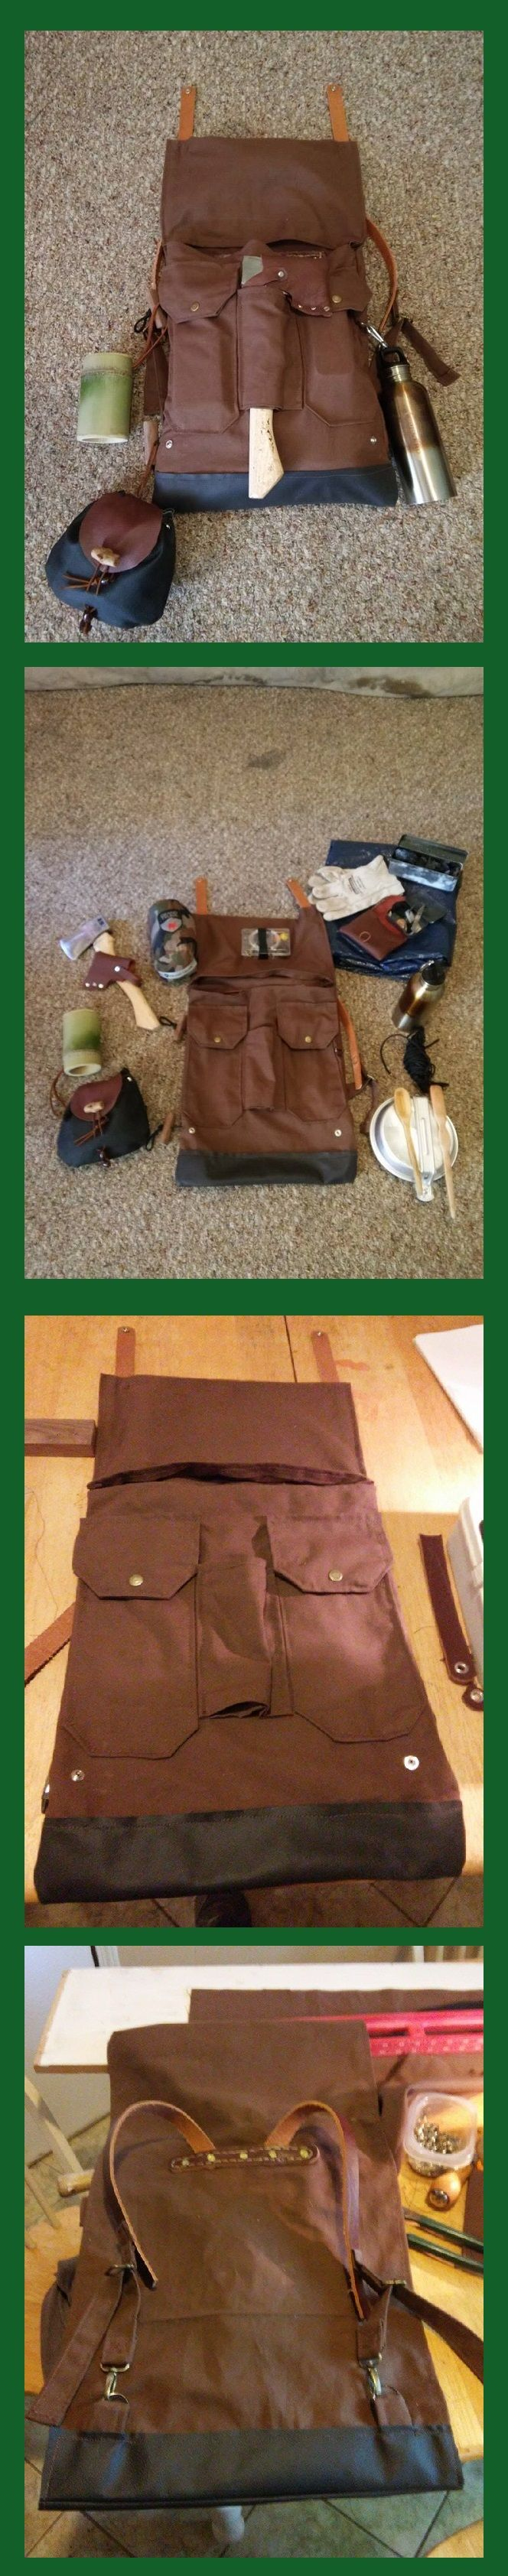 An AWESOME DIY Pack Design and it's contents. One of the best i ave seen.